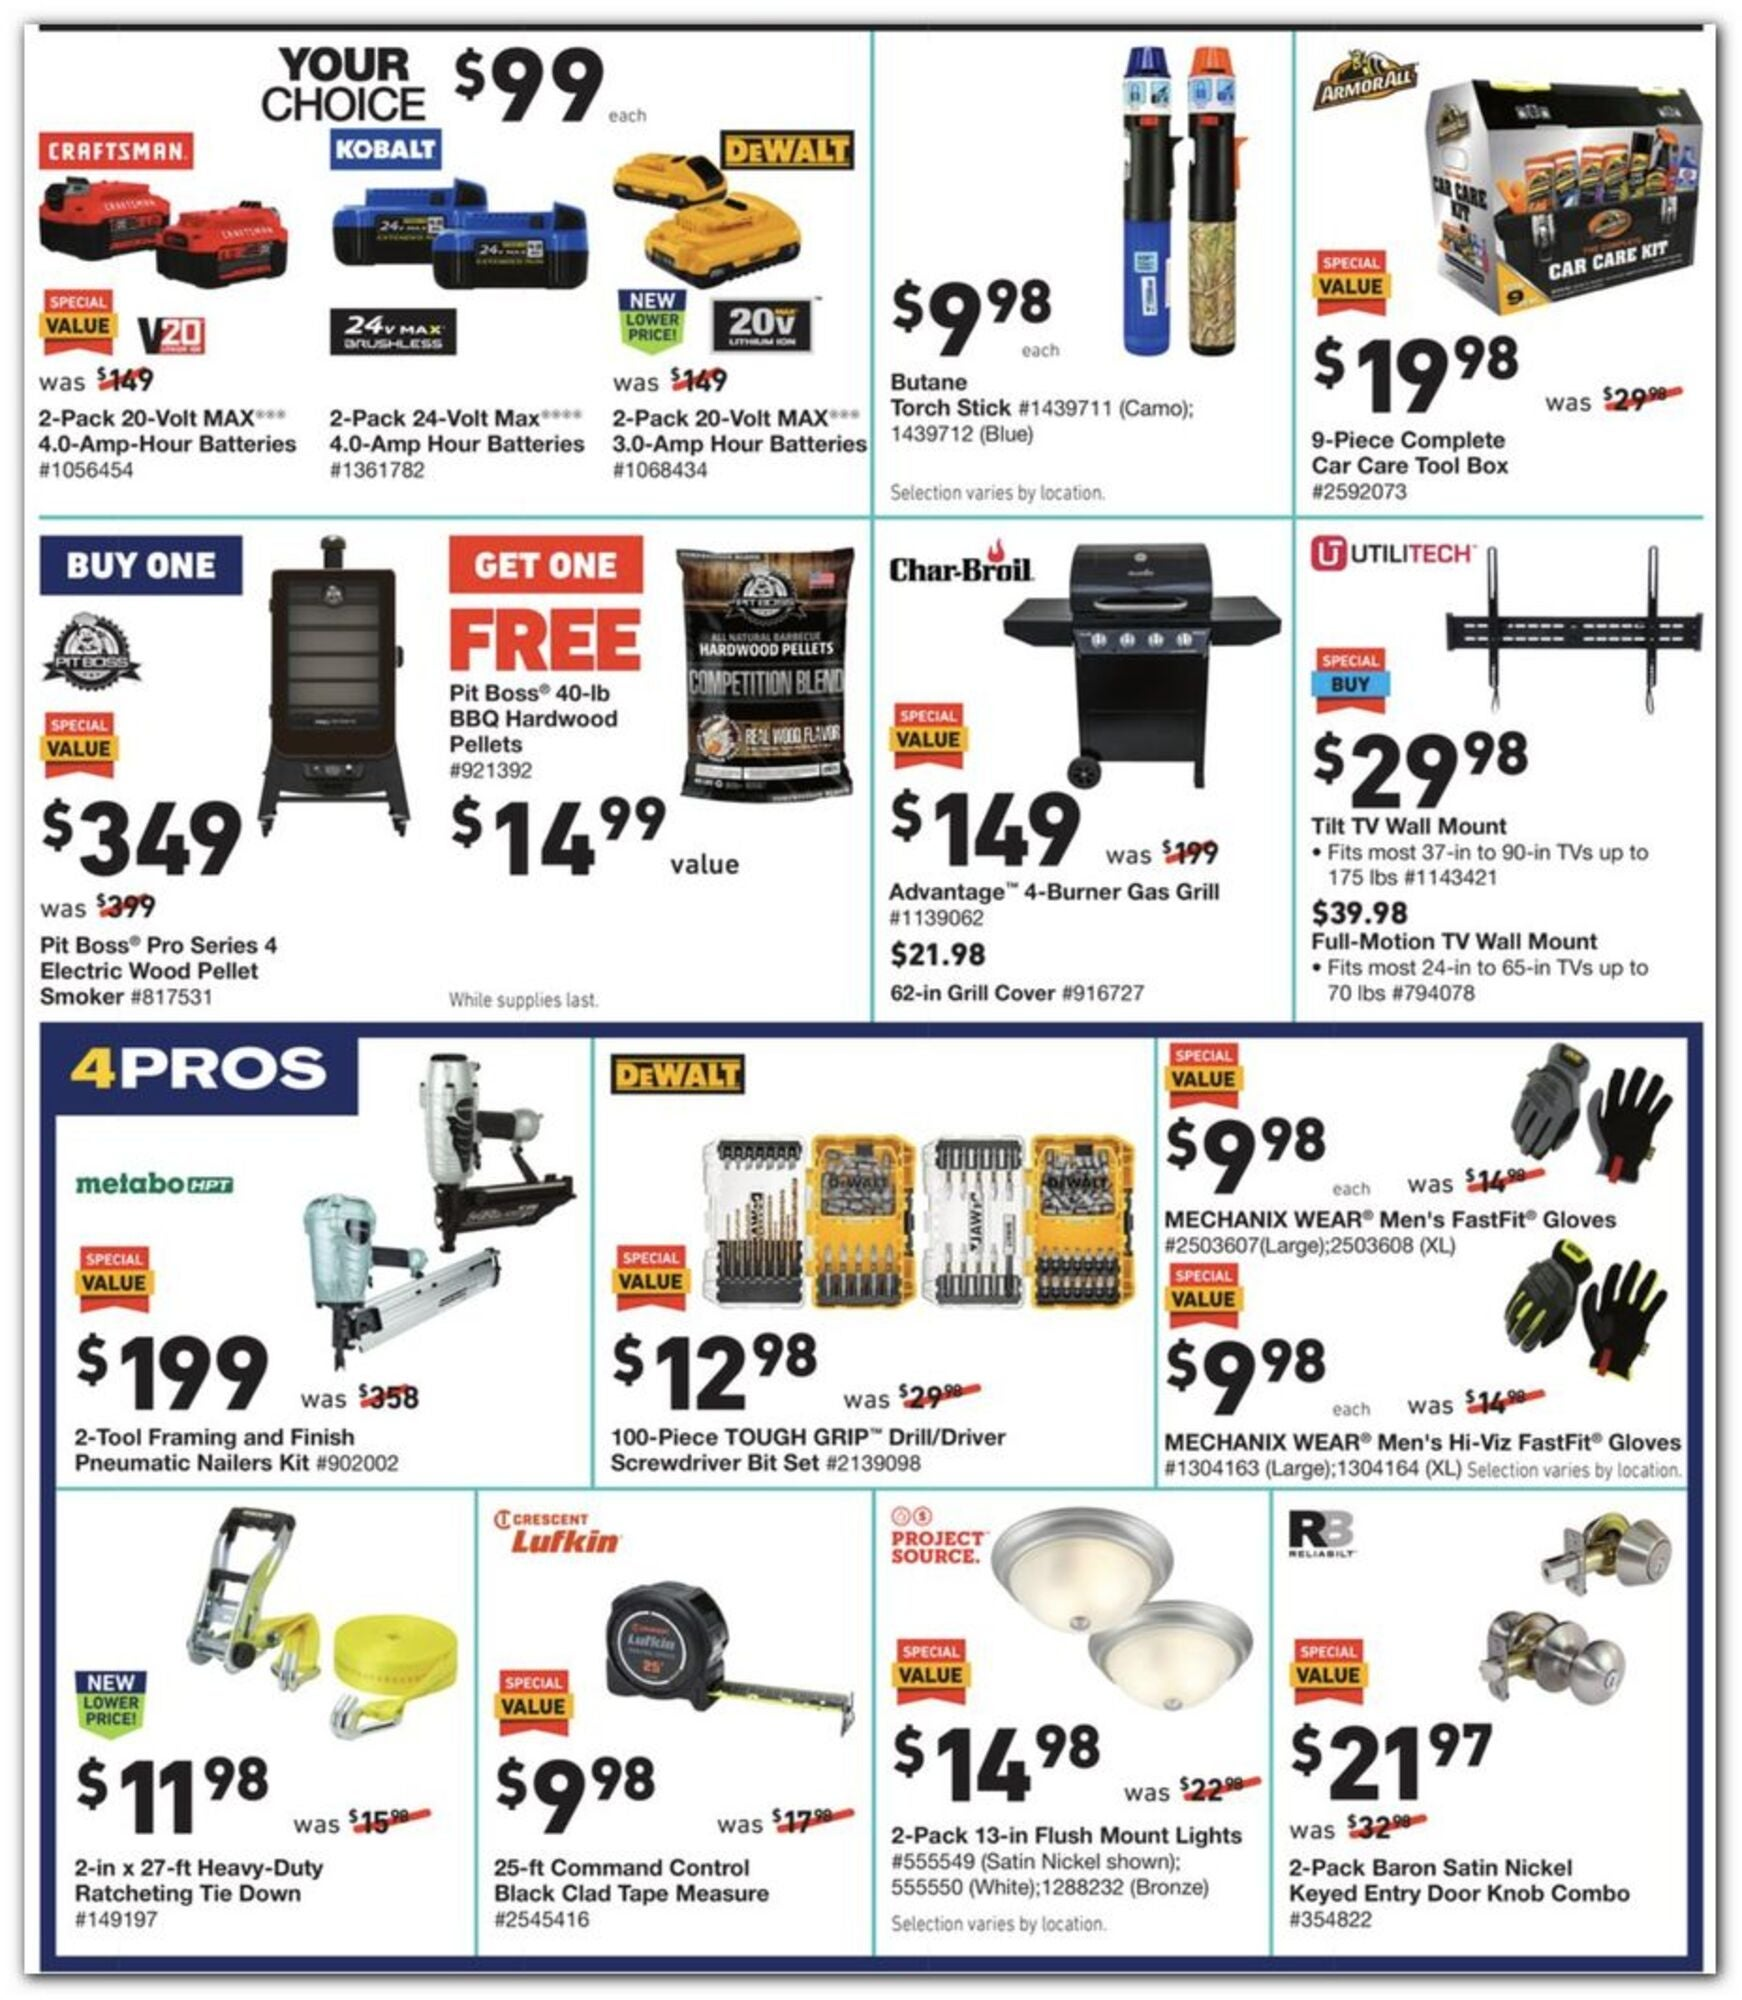 Lowe S Black Friday 2020 Ad Deals Brad S Deals Save with this year lowe's black friday deals on. lowe s black friday 2020 ad deals